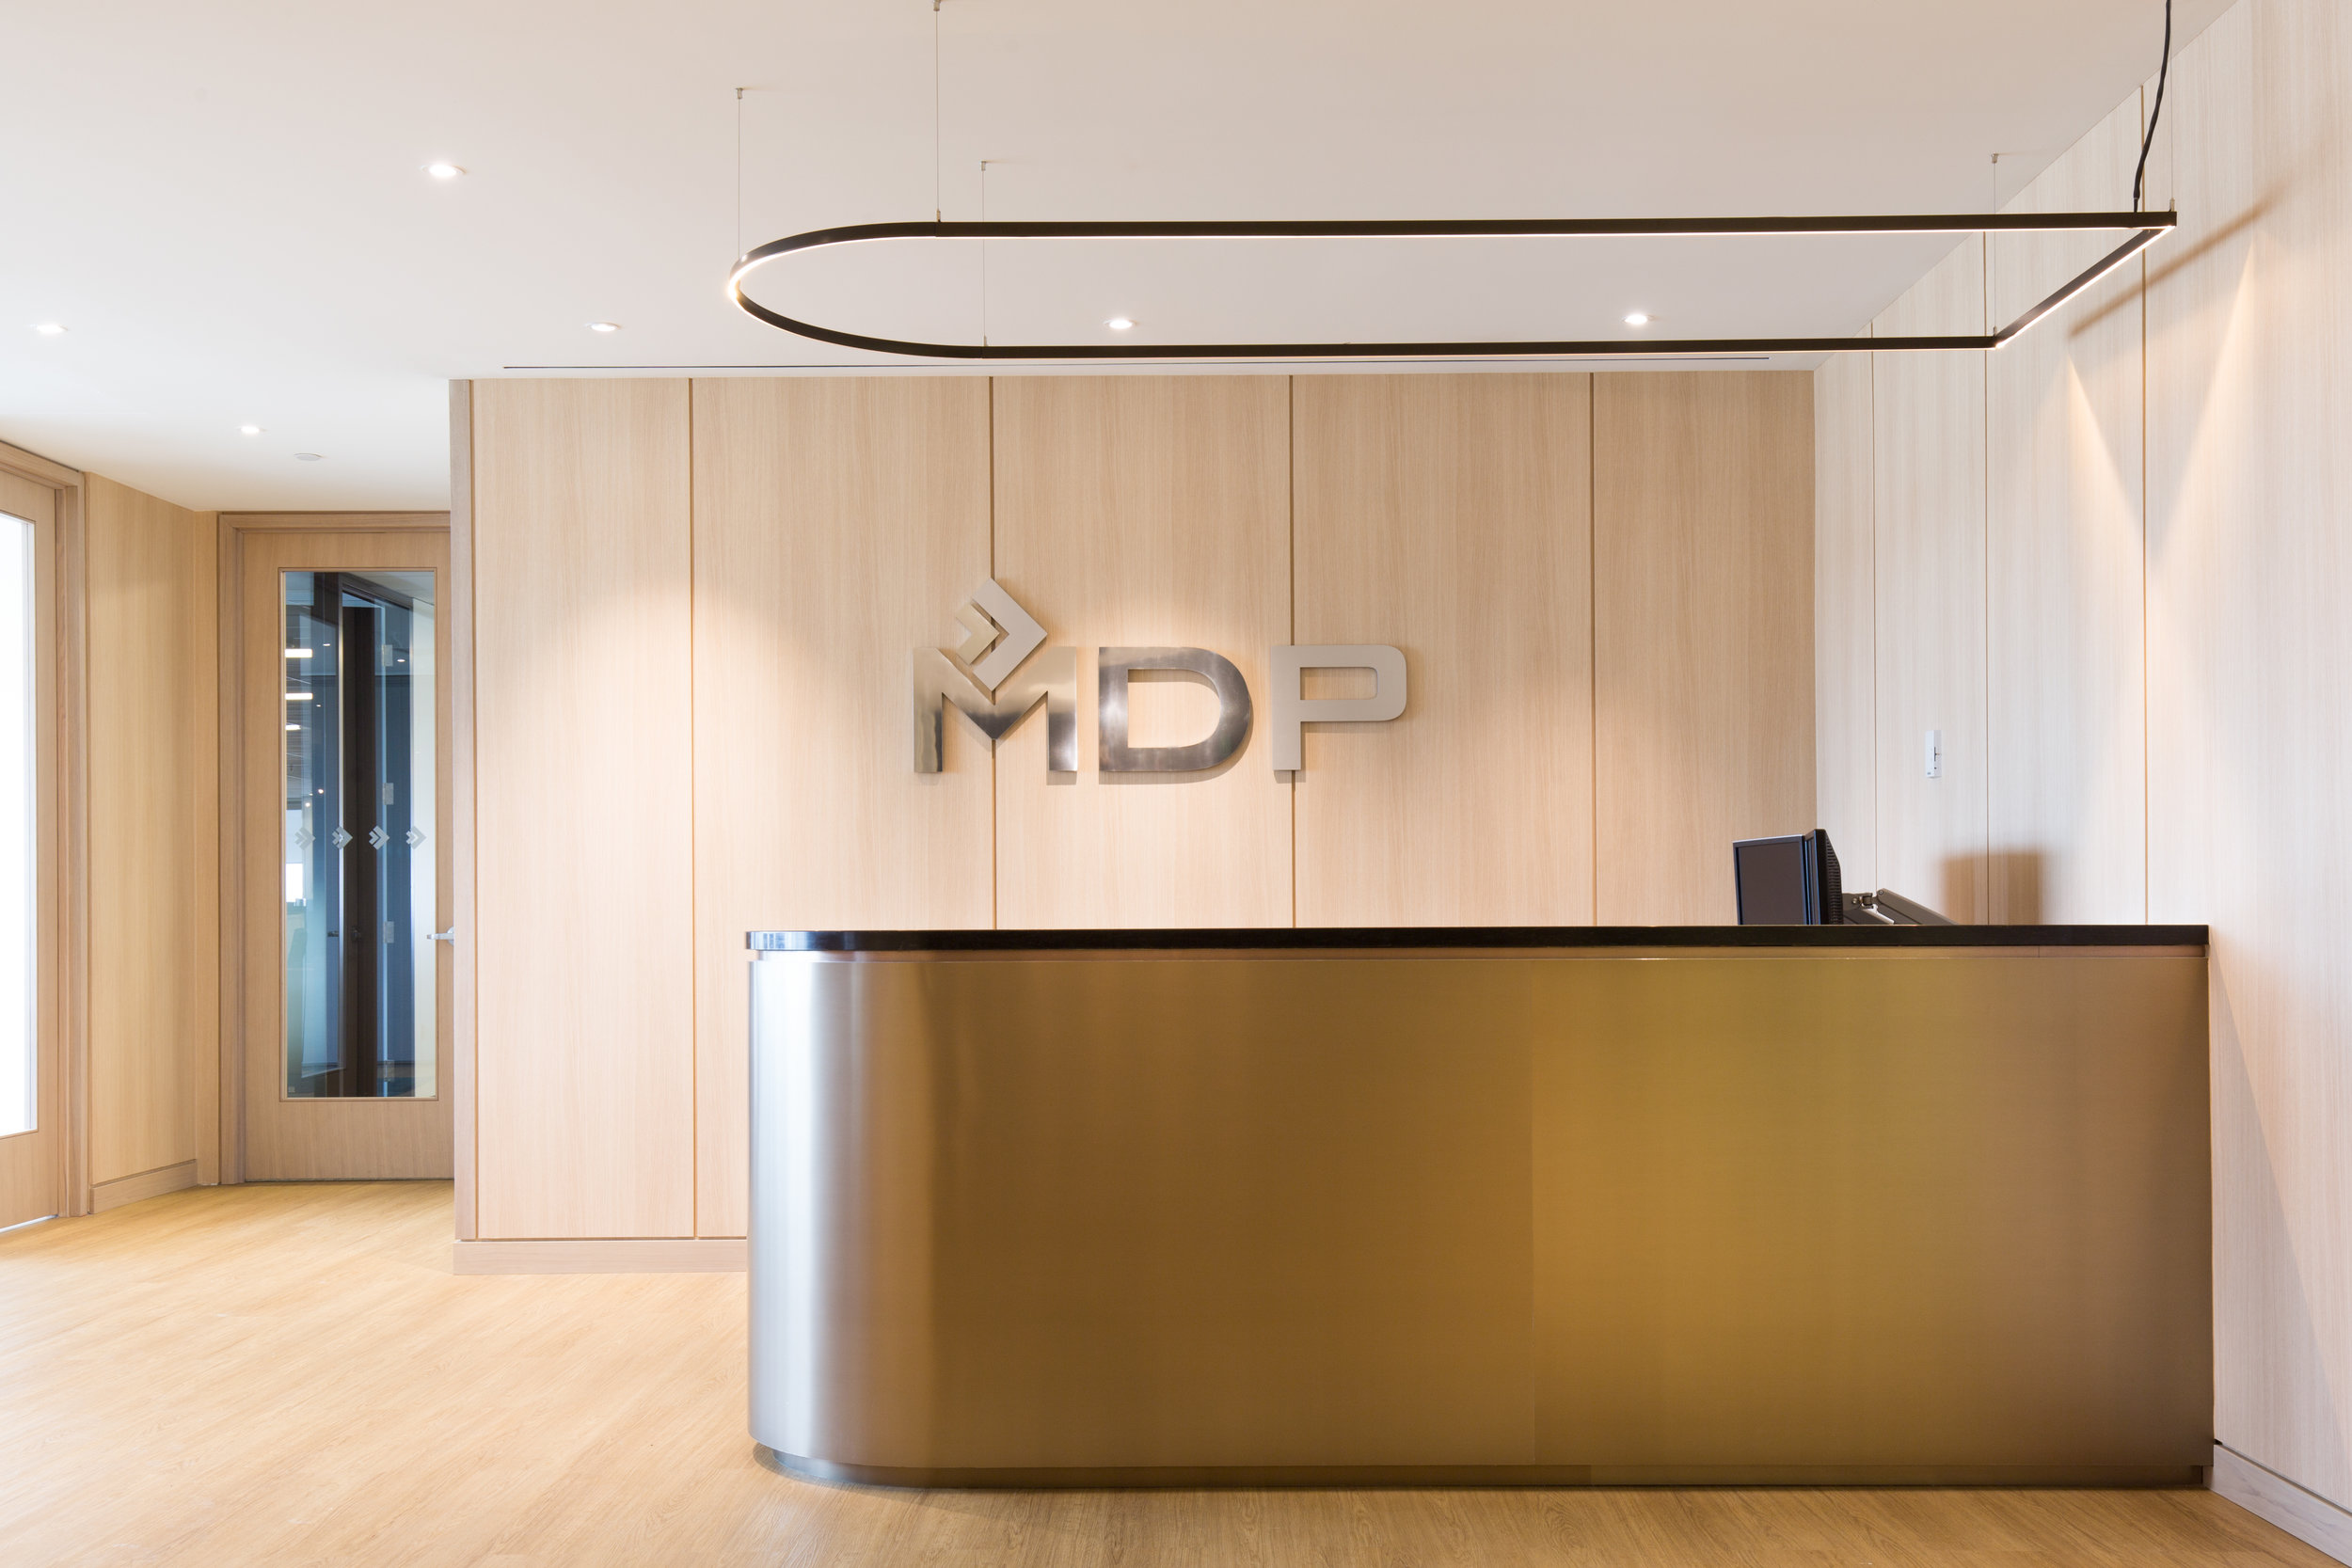 MDP LLP reception